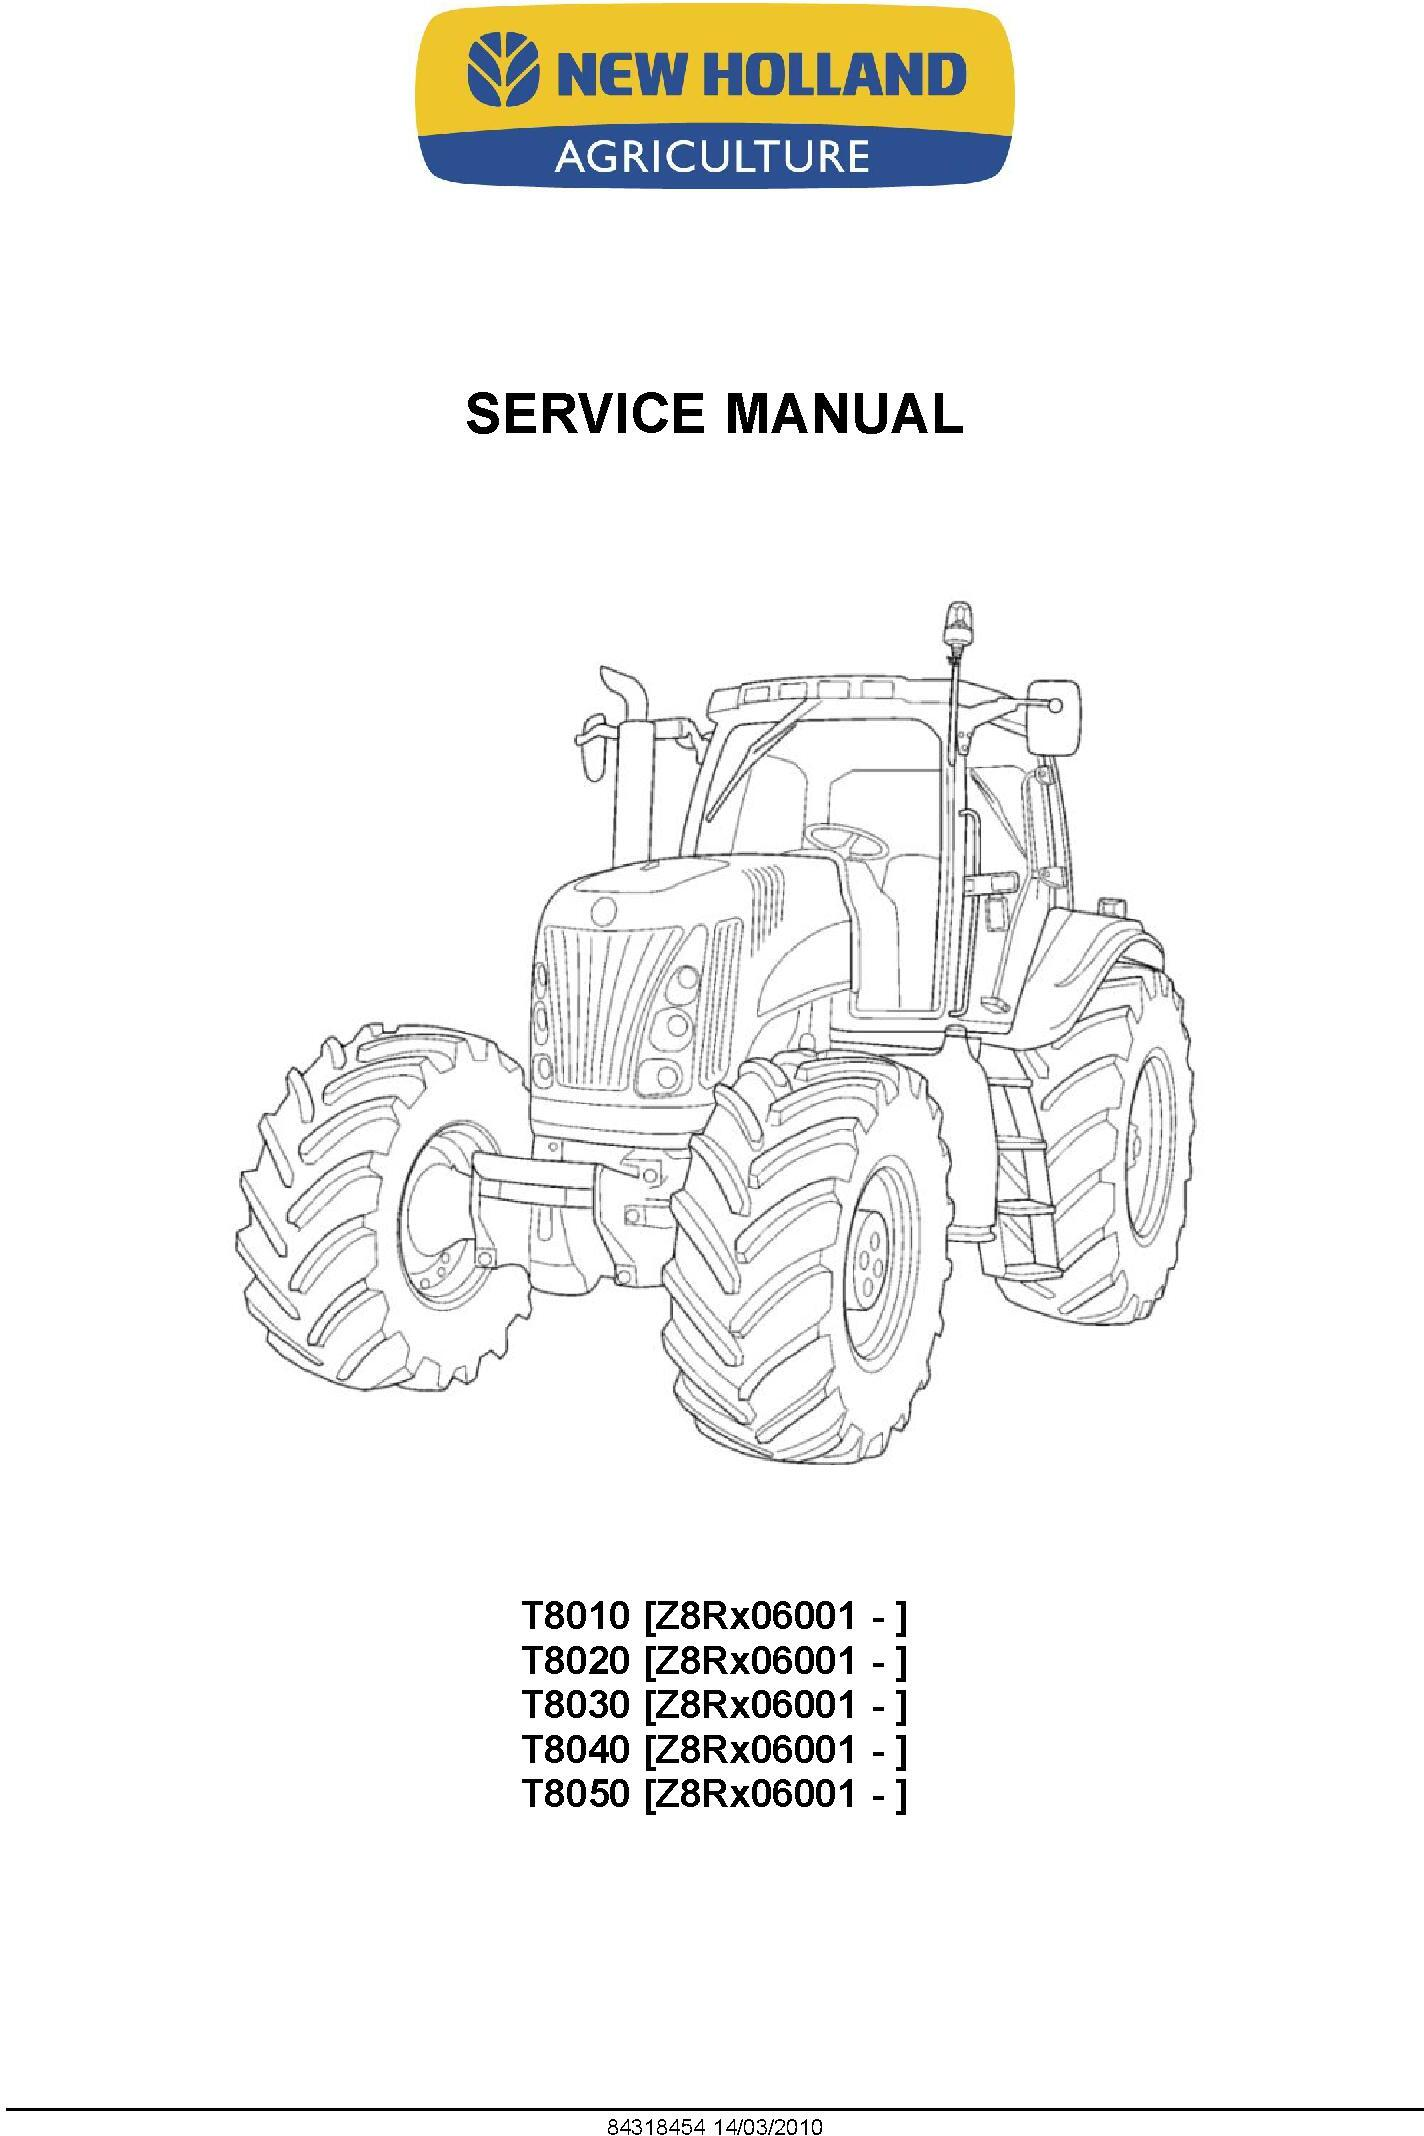 New Holland T8010, T8020, T8030, T8040, T8050 Agricultural Tractor Service Manual - 1